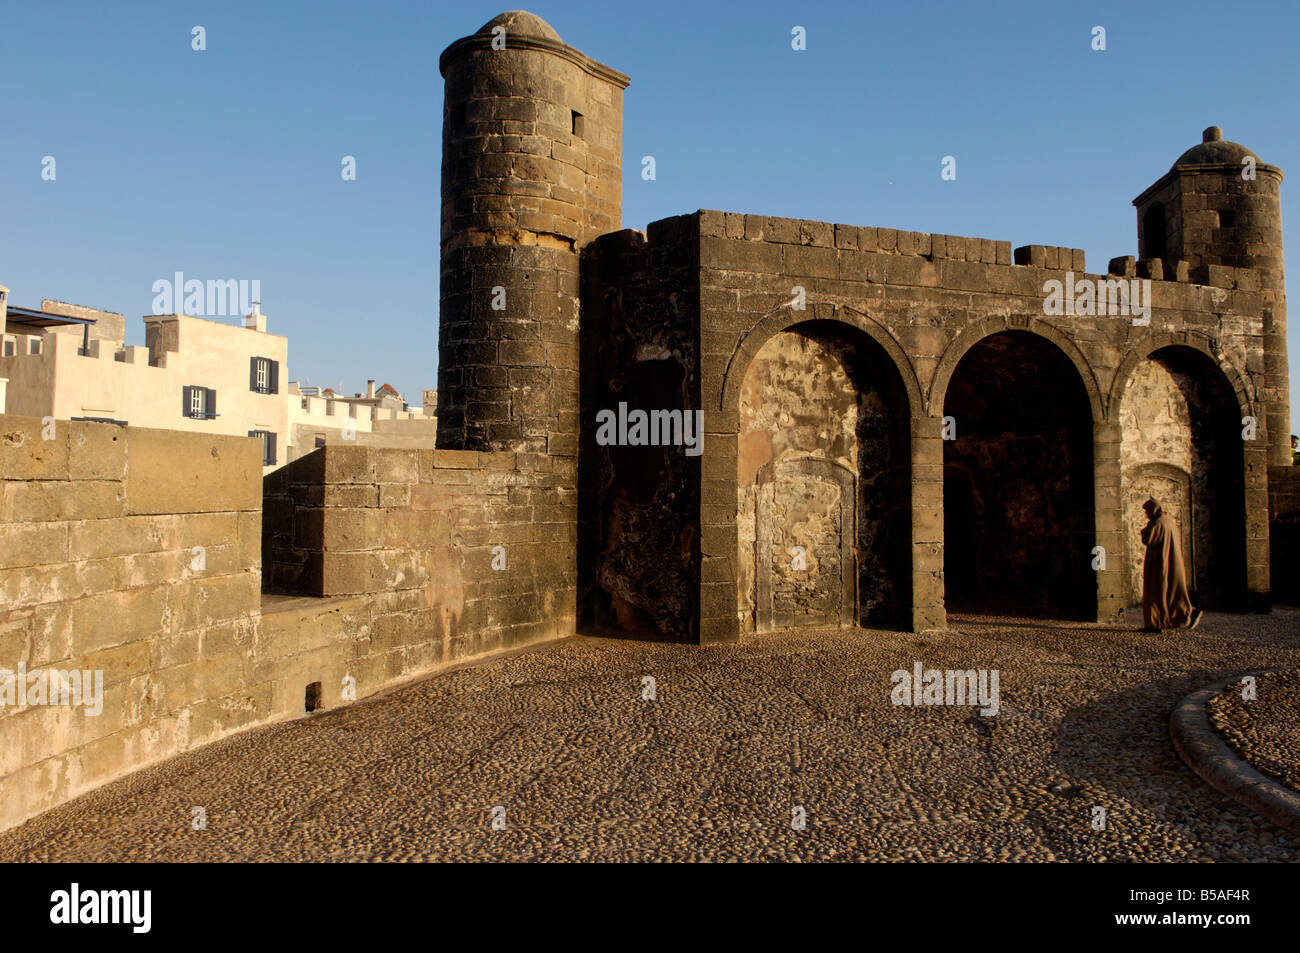 Skala of the Kasbah, a mighty crenellated bastion, Essaouira, Morocco, Africa Stock Photo